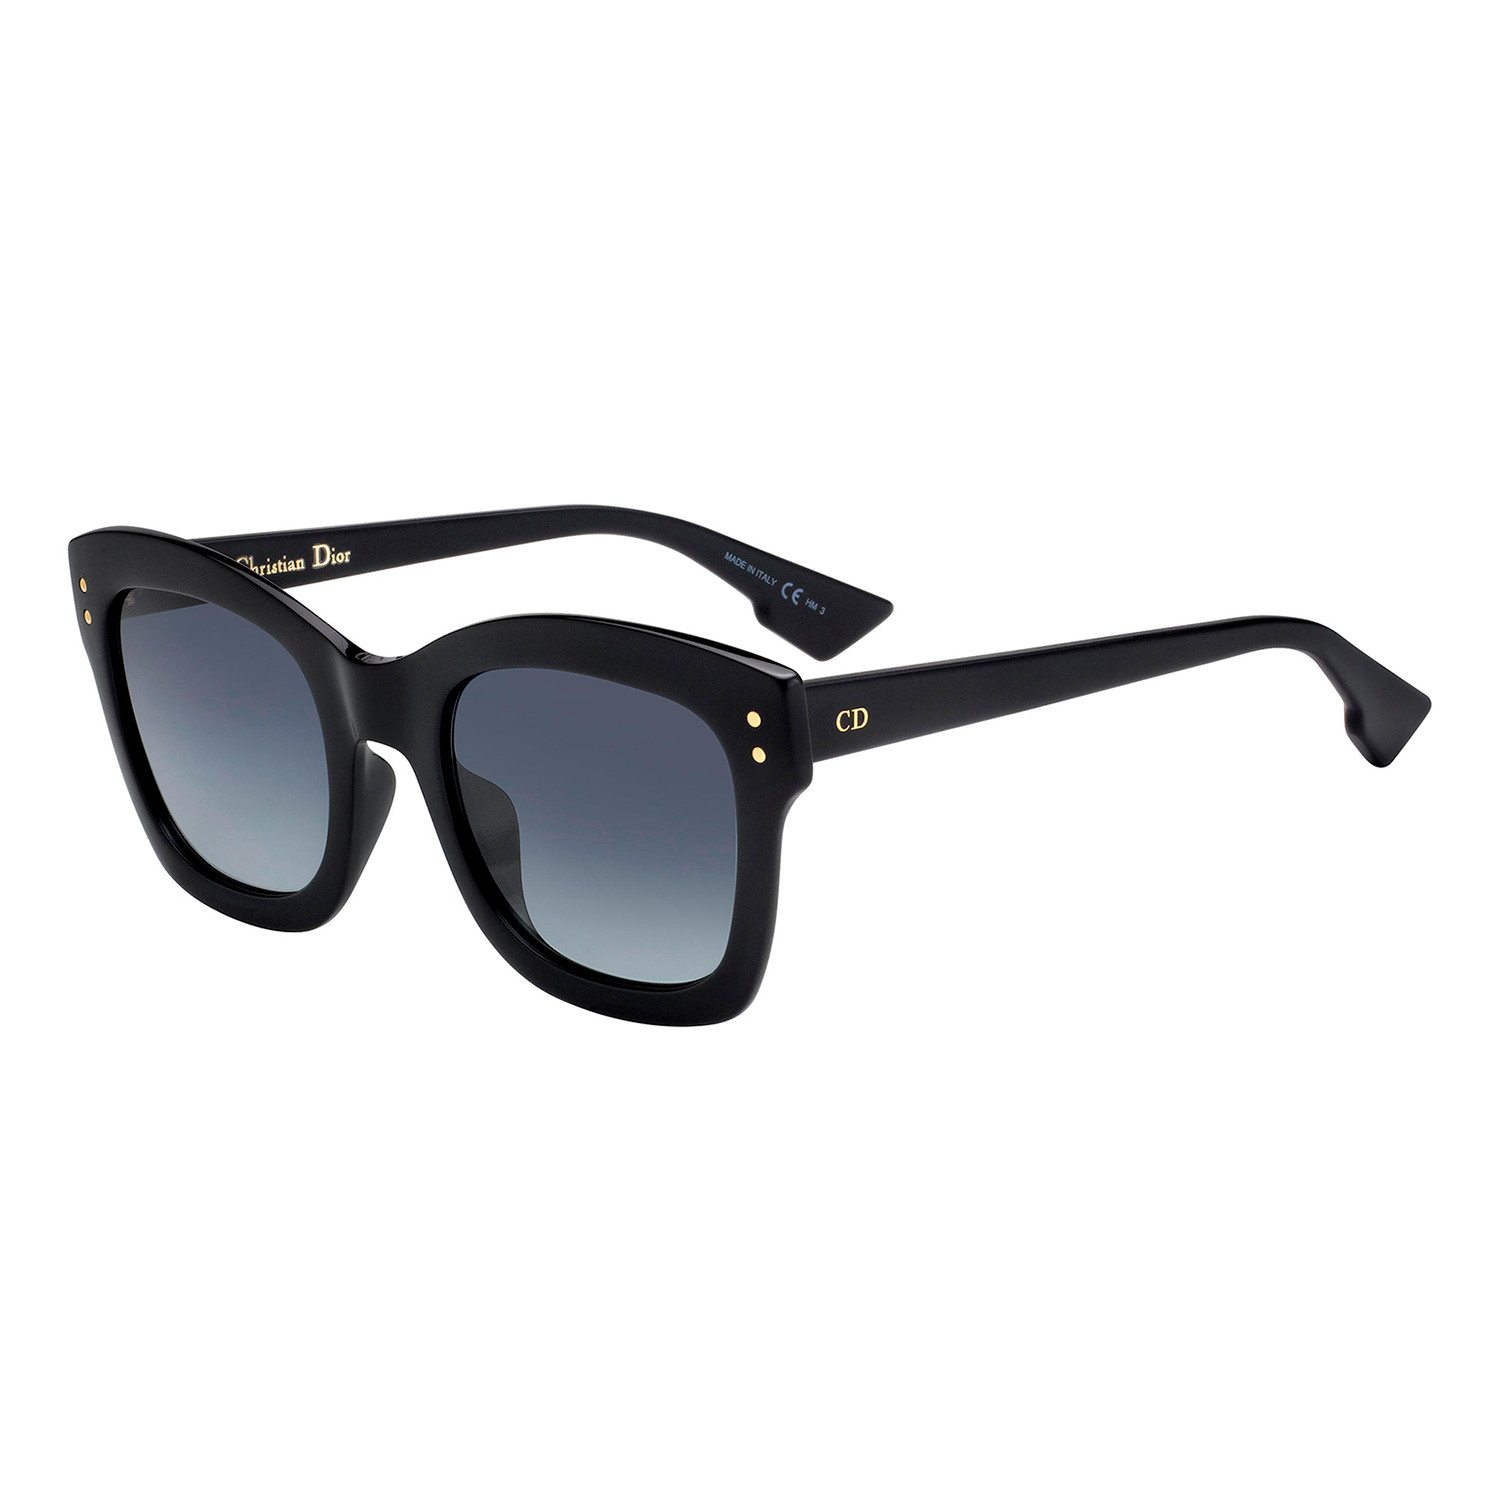 6841b8eeb7c9 8581b8d4a54d71e690c3a3d1f26e3950 medium · Dior DIORIZON 2 Sunglasses     Black Frames + Grey Gradient Lenses